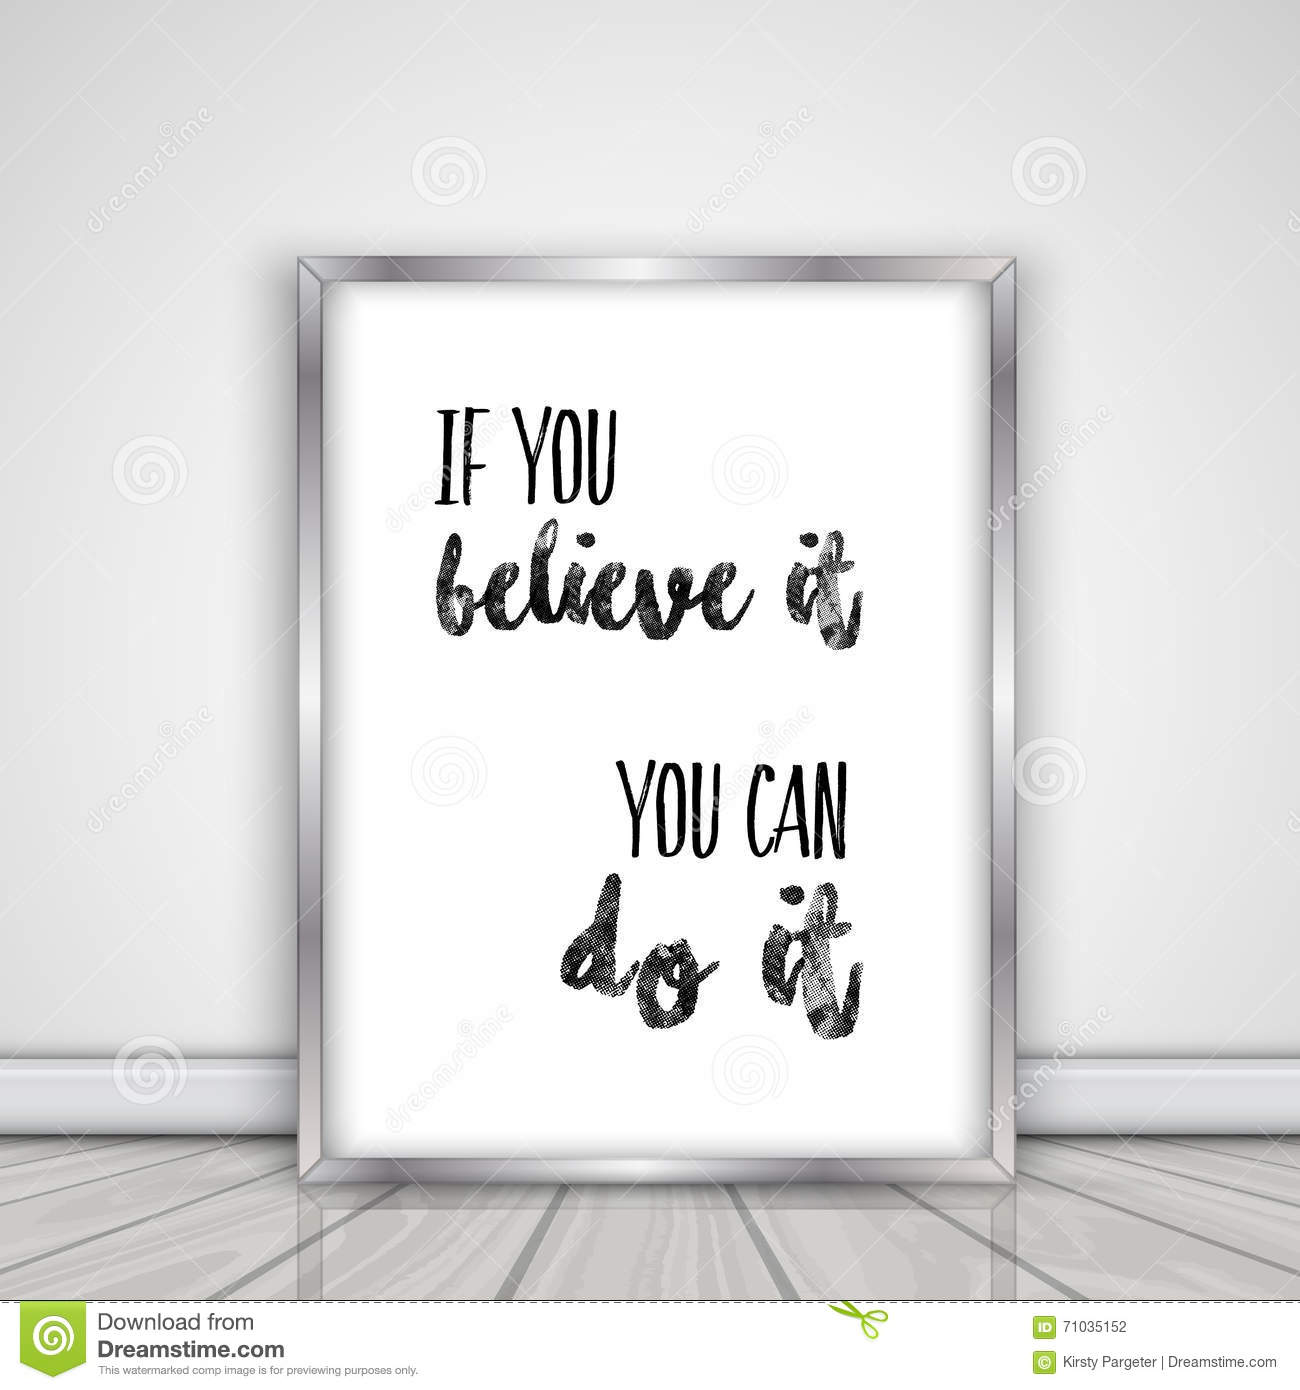 Inspirational Quote In Picture Frame Stock Vector - Illustration of ...